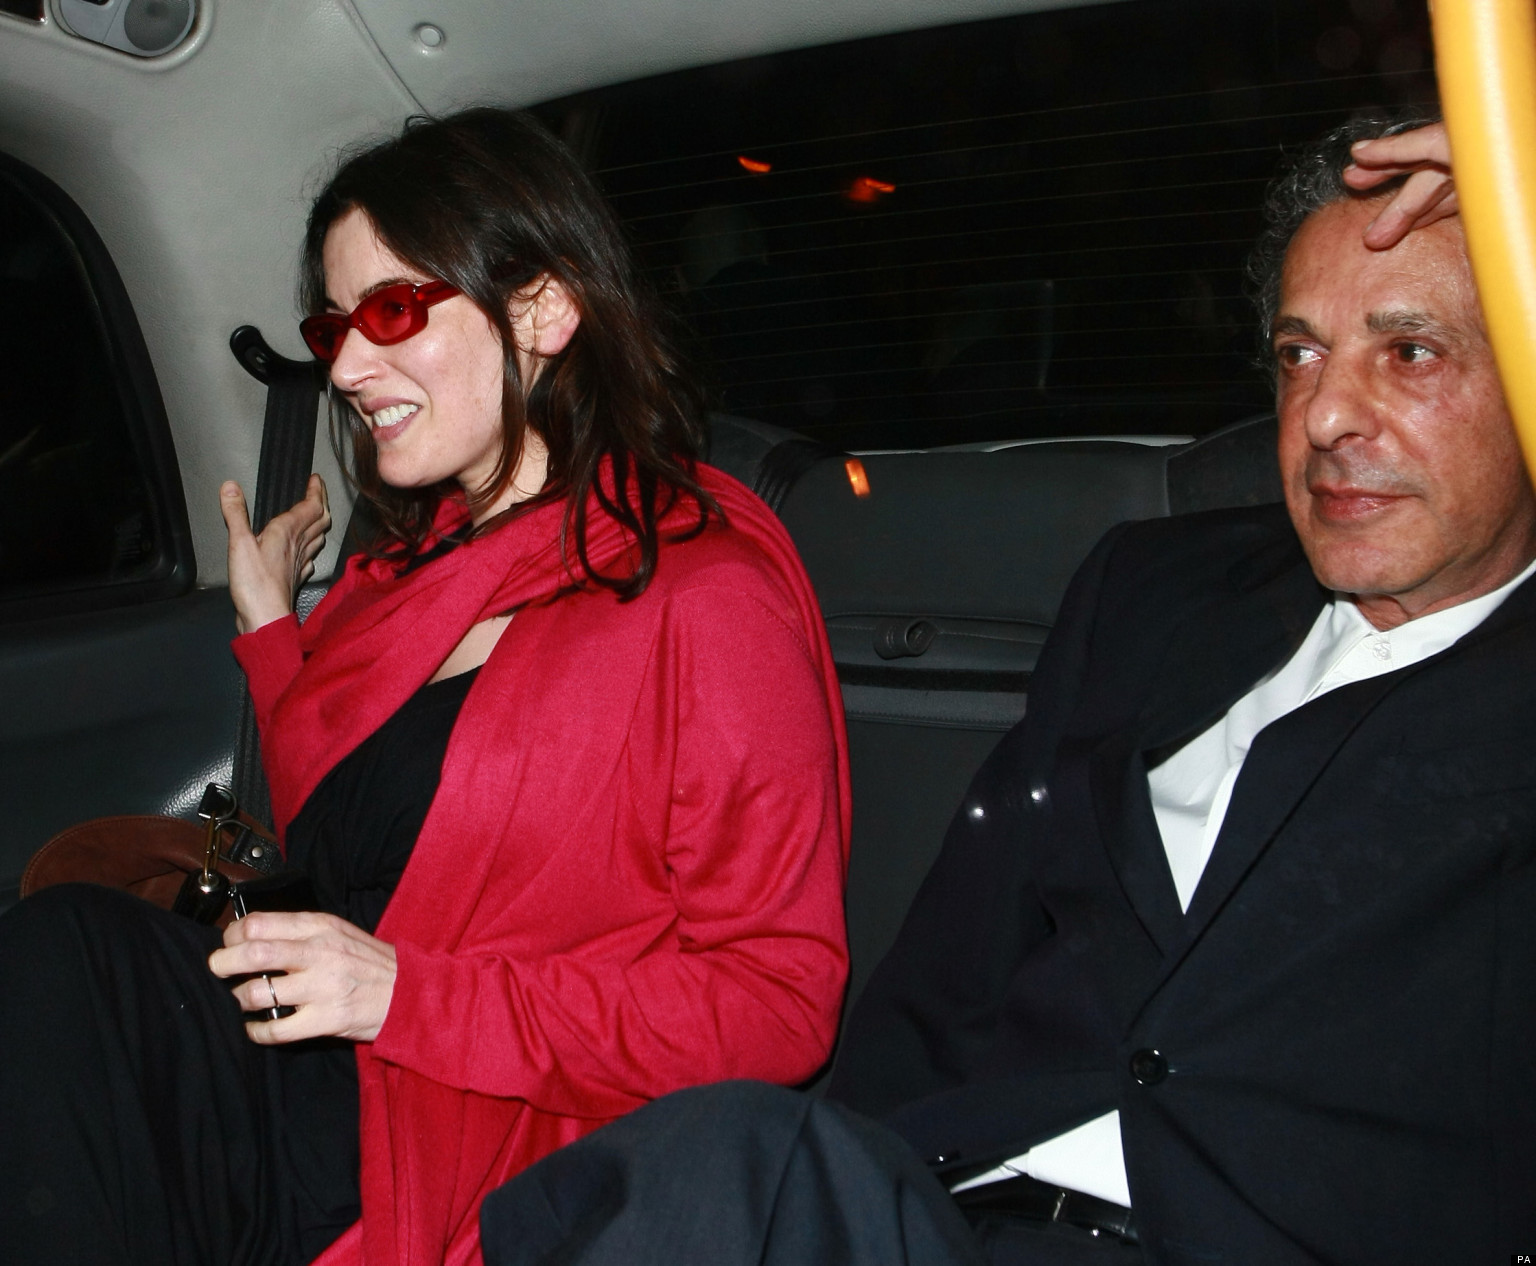 Fans Shocked By Pictures Of Nigella Lawson Showing Her Husband Charles Saatchis Hands Around